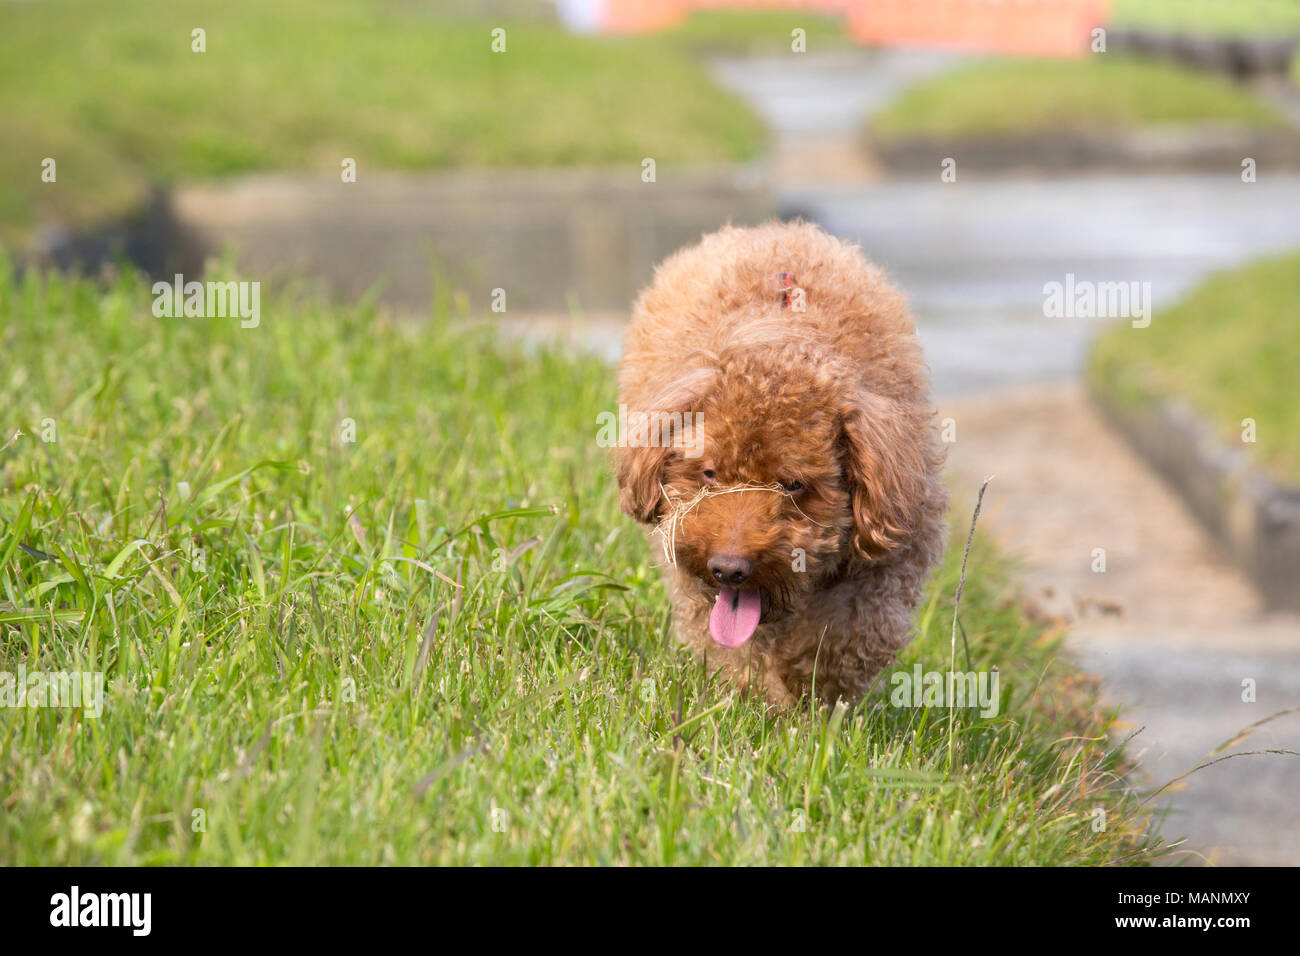 Chocolate poodle in a park walking through grass hunched down as if sneaking up on someone Stock Photo